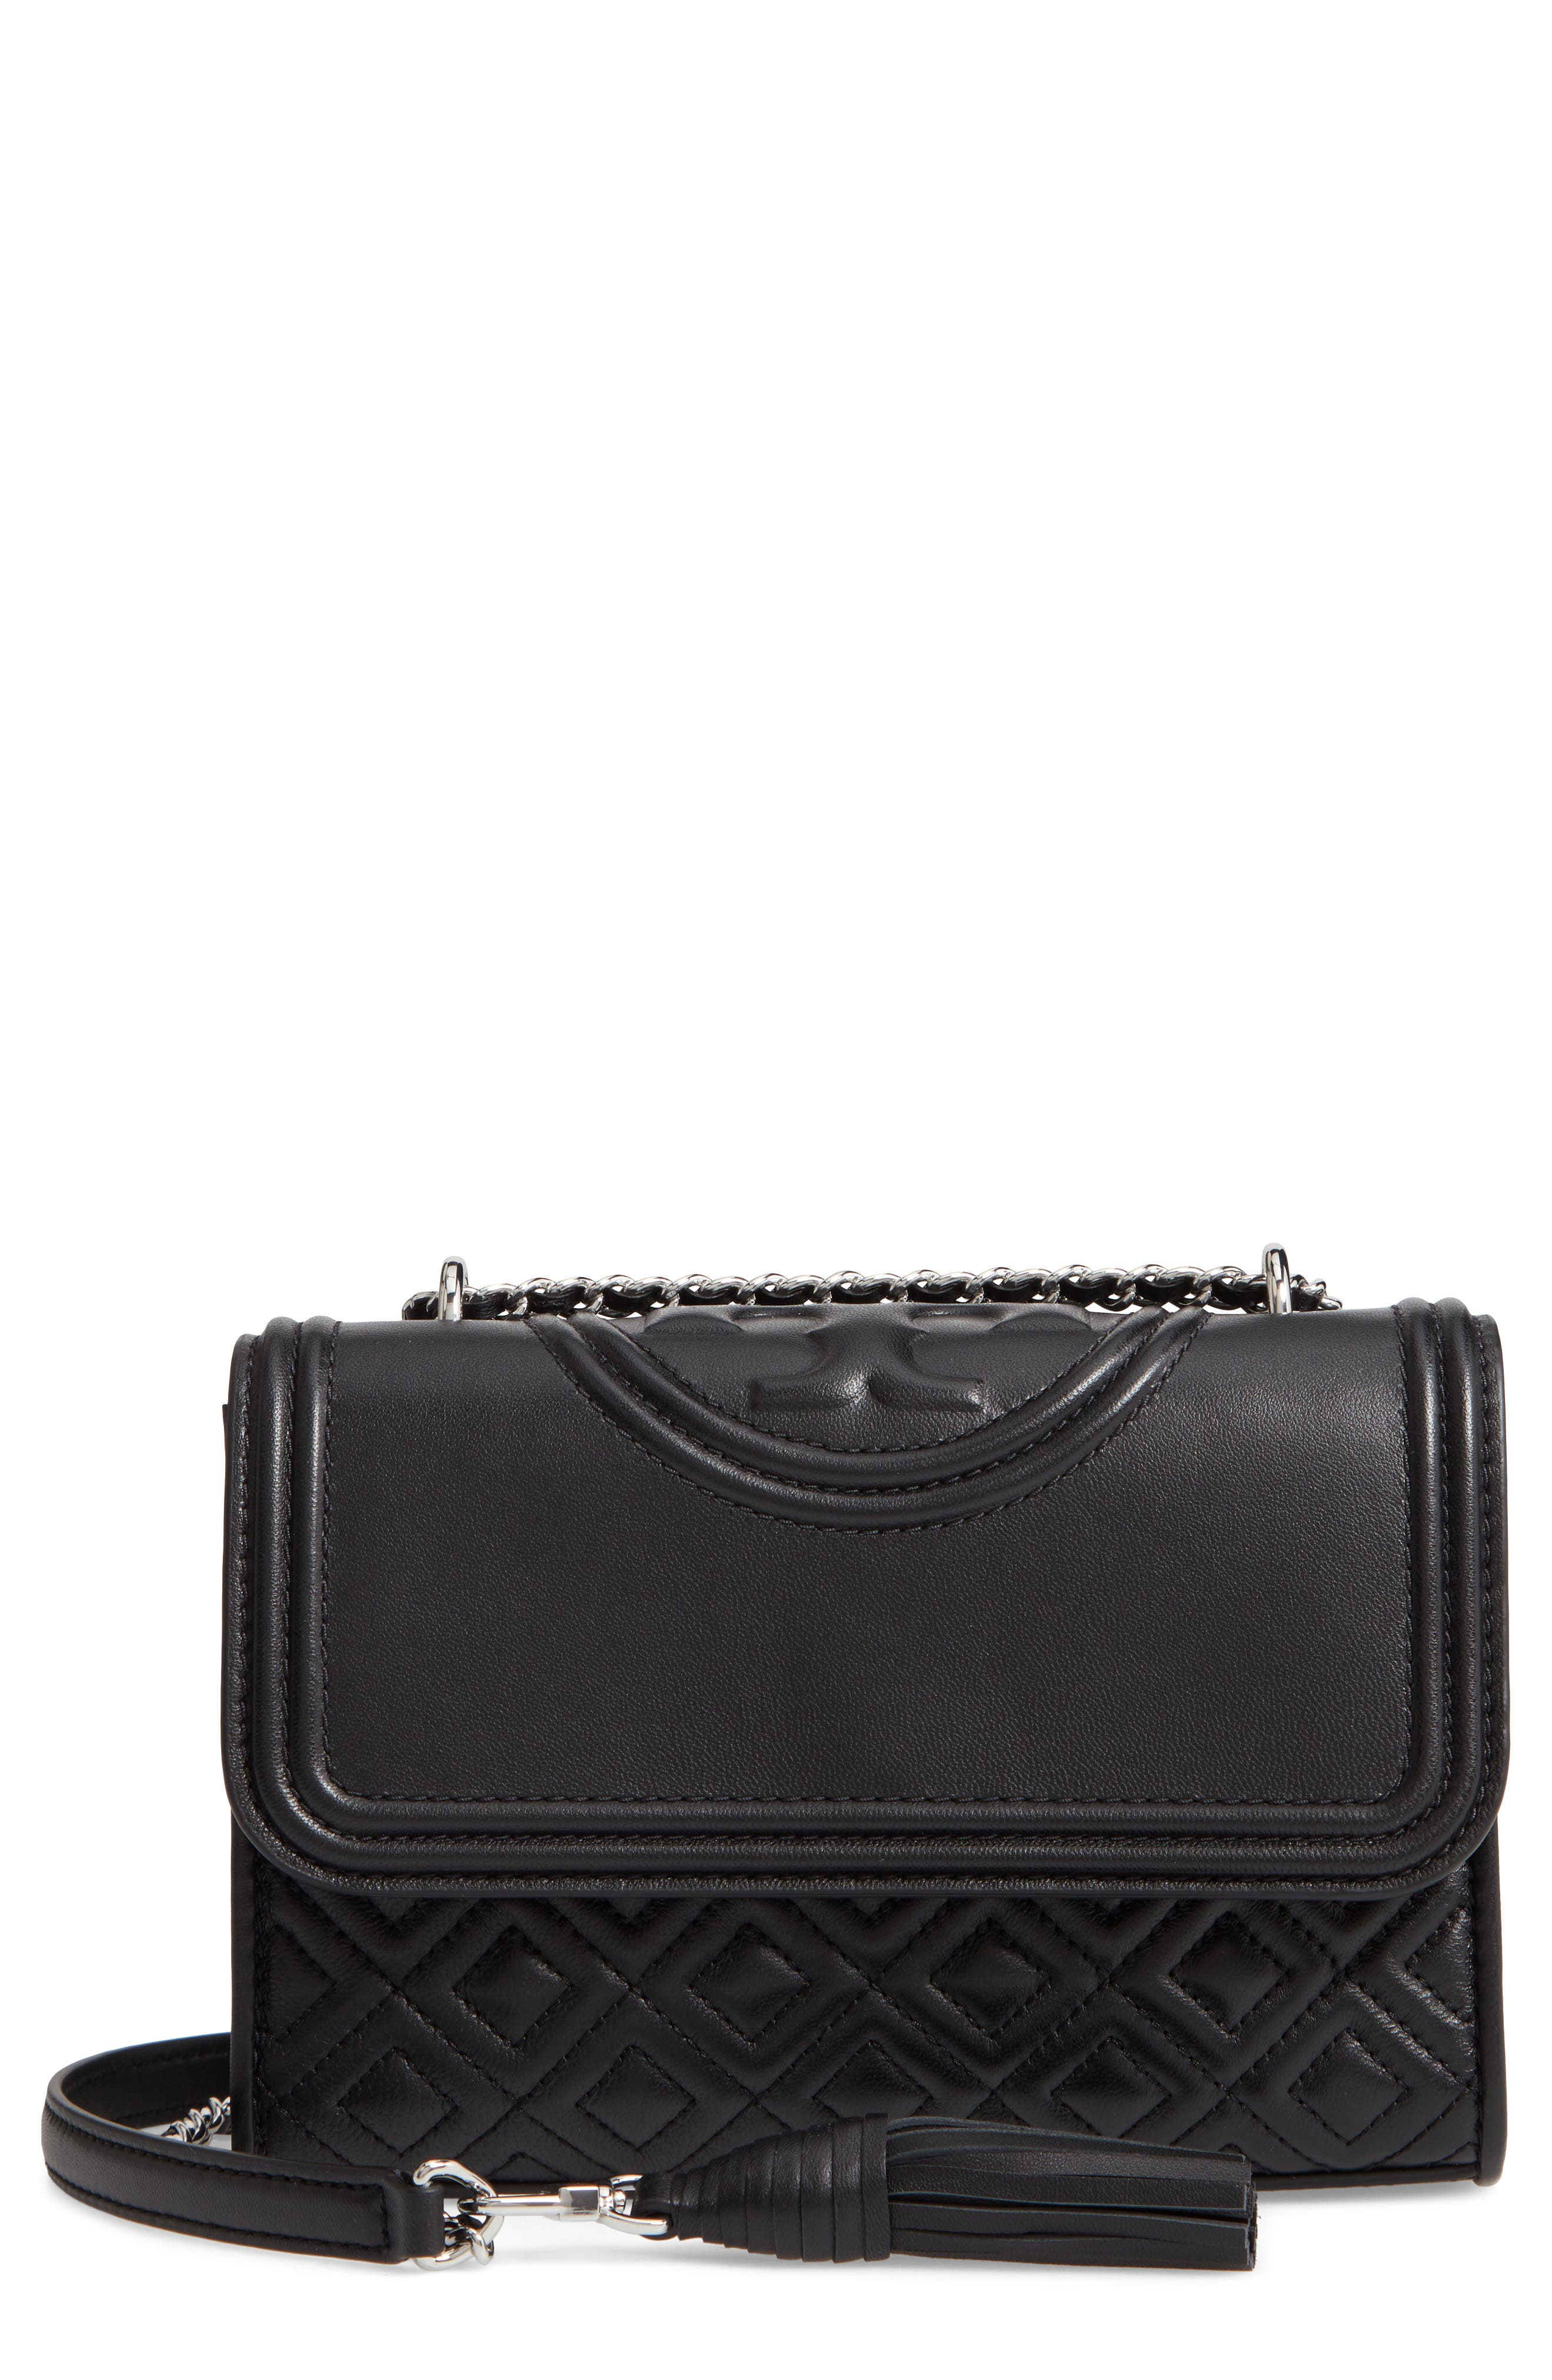 TORY BURCH, Small Fleming Leather Convertible Shoulder Bag, Main thumbnail 1, color, BLACK / SILVER